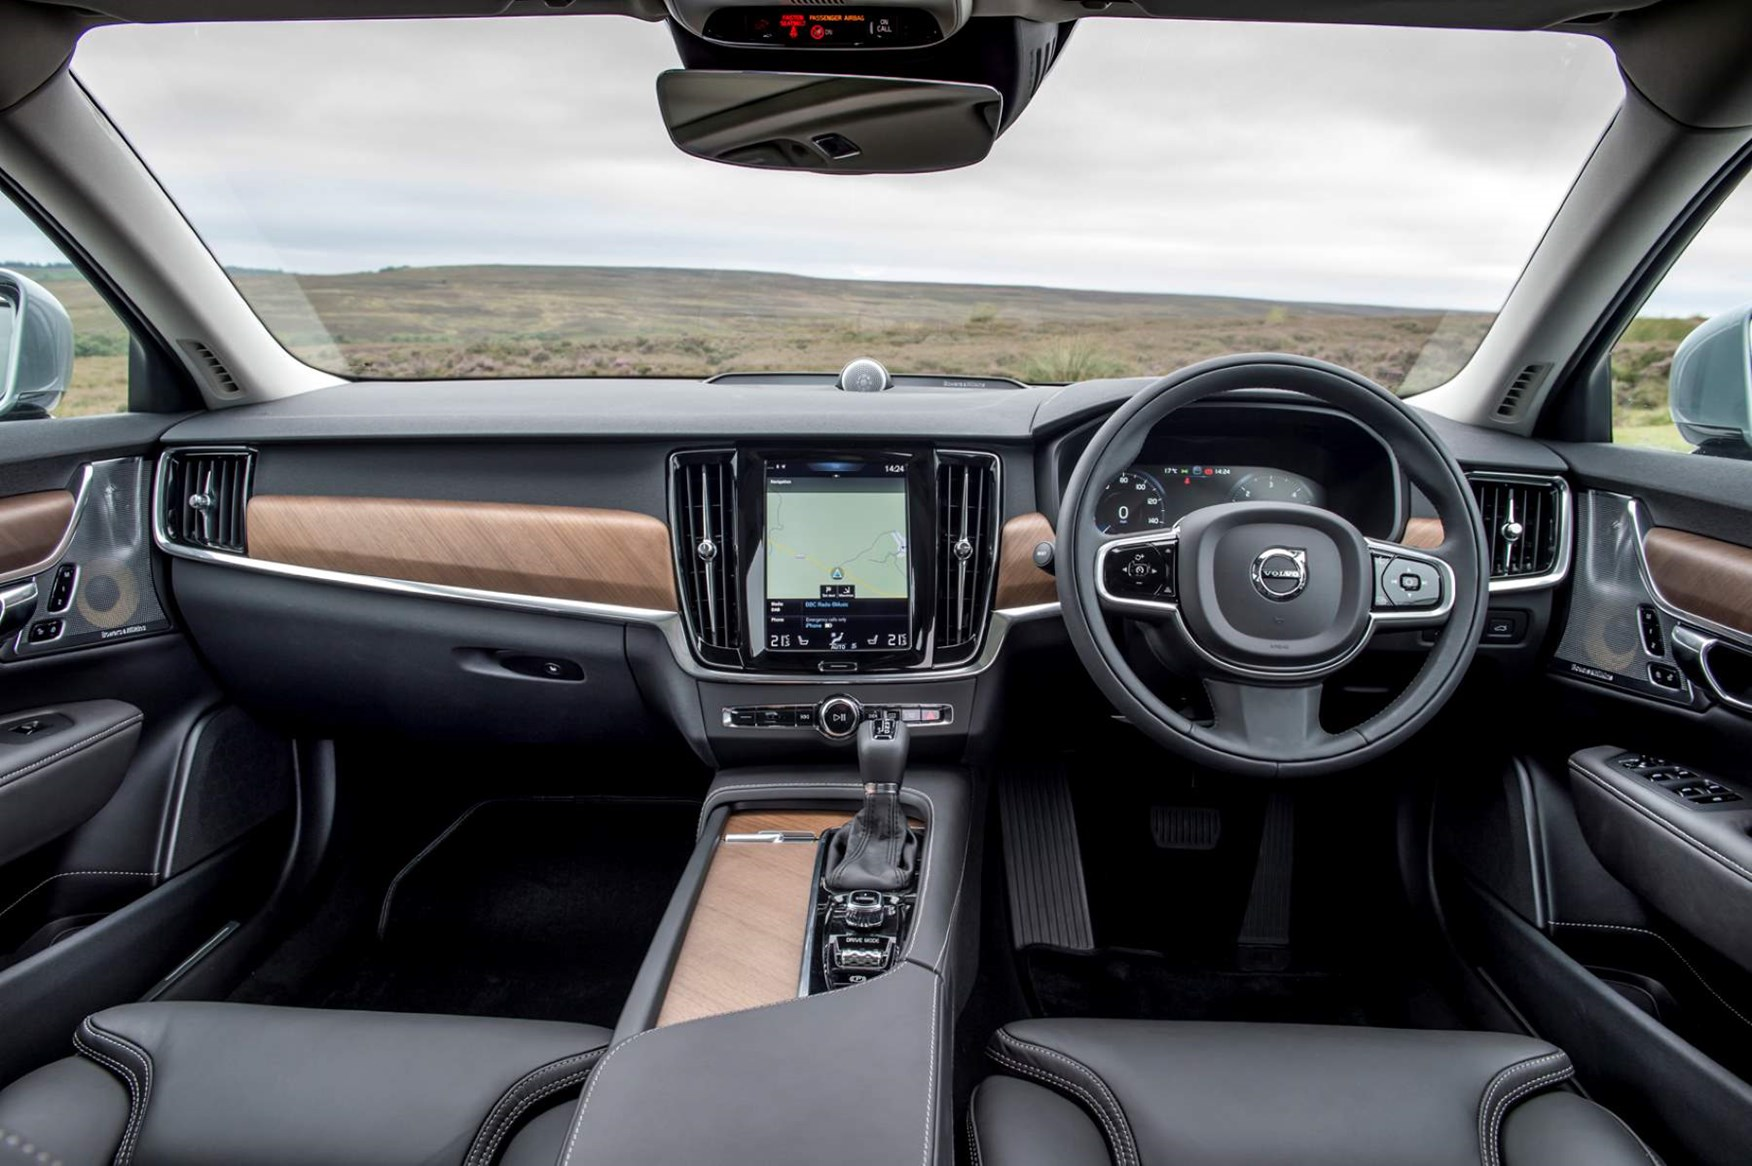 2016 Volvo V90 Inscription dashboard